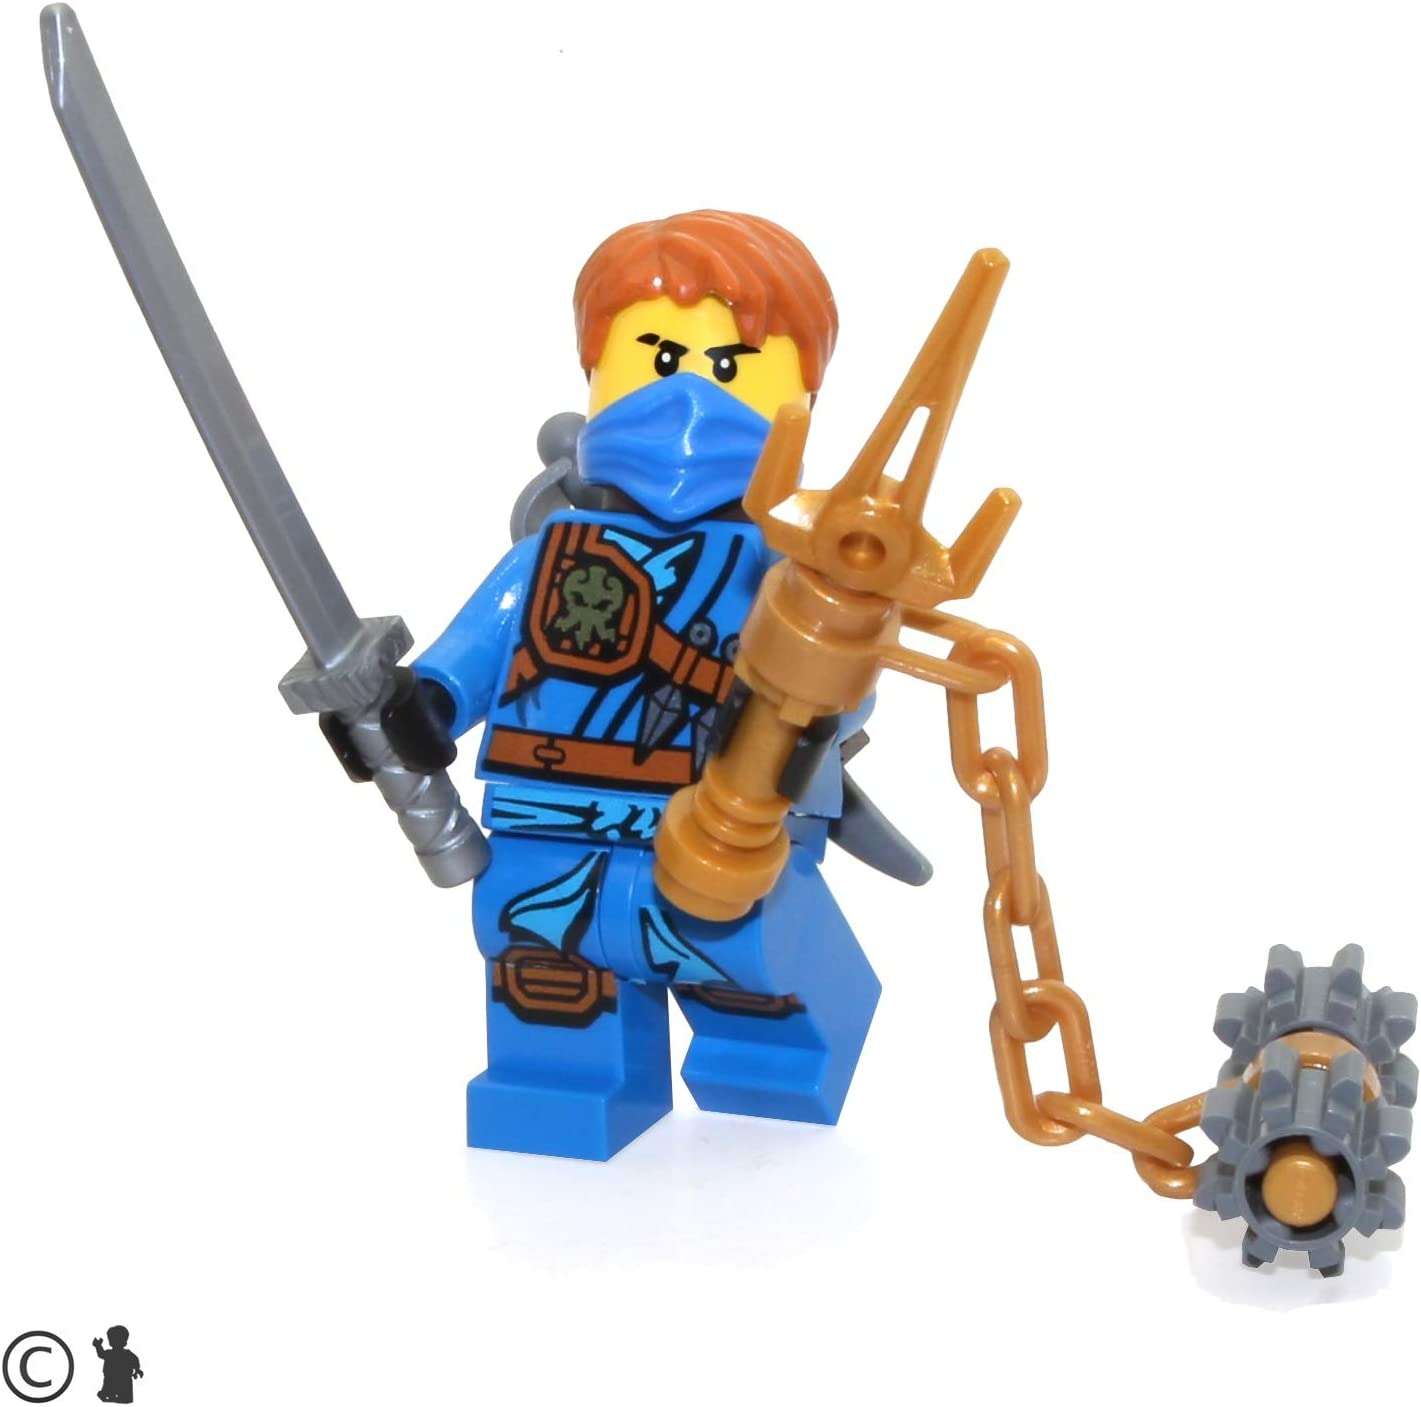 LEGO Ninjago Tournament of Elements Minifigure - Jay (Limited Edition Foil Pack with Weapons)